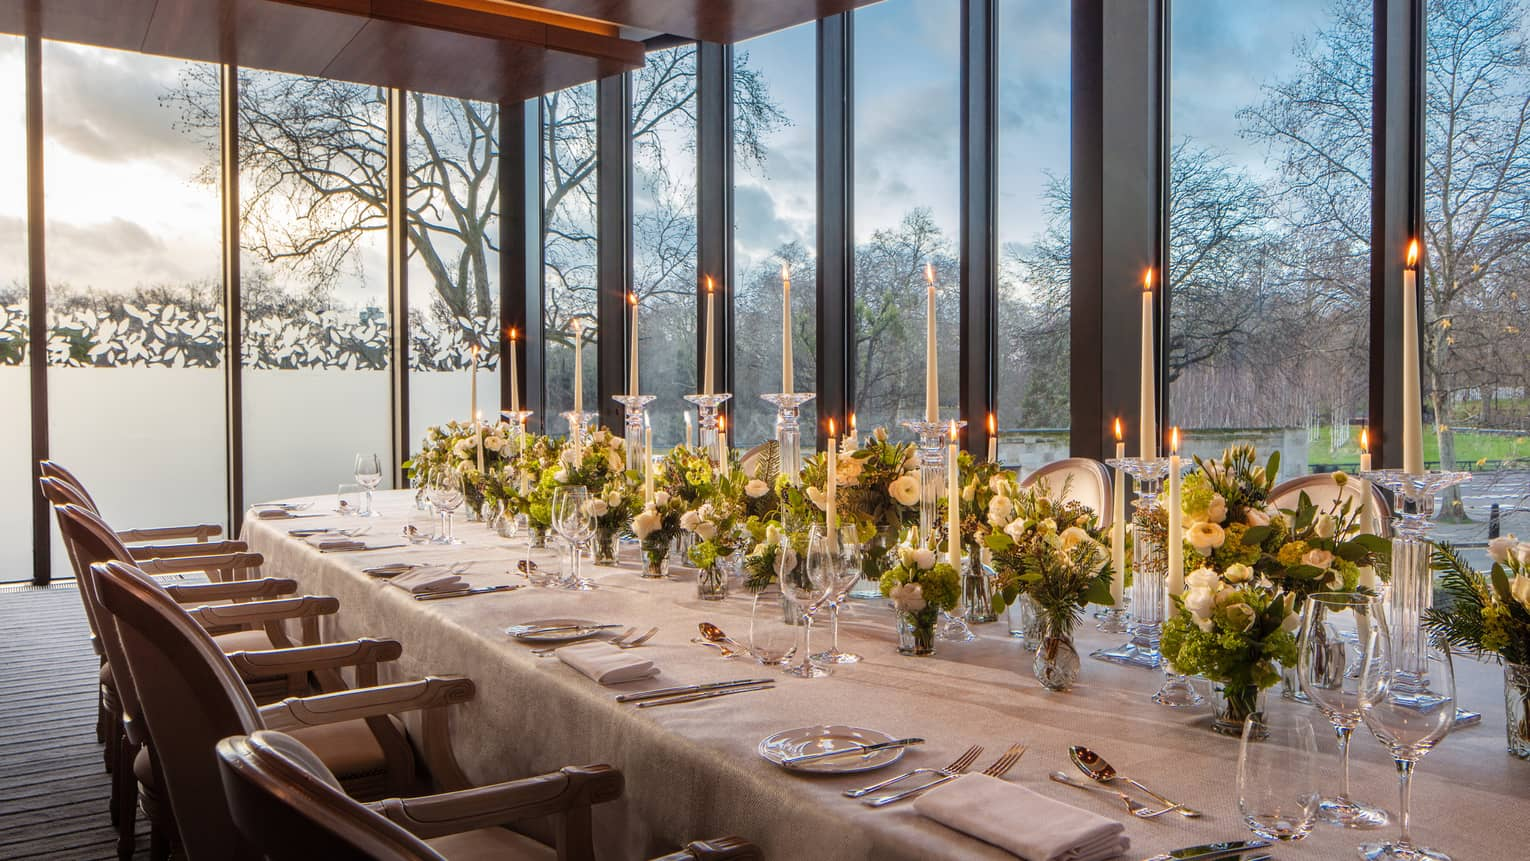 Meeting room set for dinner with white linens, tall tapered candles, green floral arrangements, and plenty of natural light